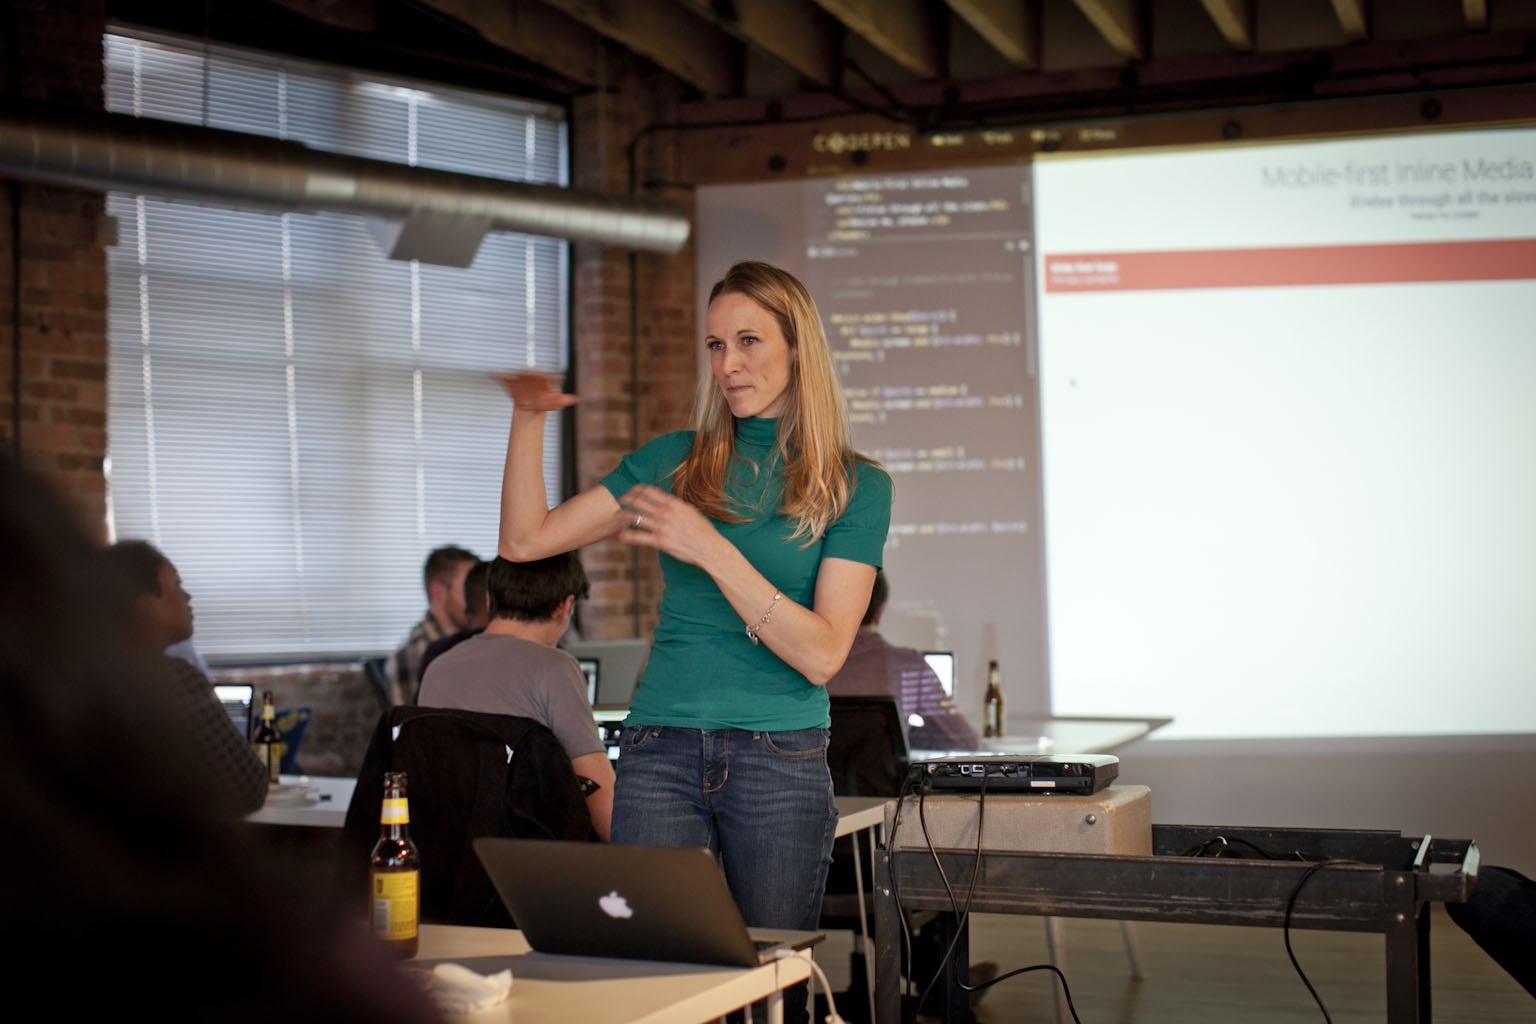 Stacy Kvernmo presenting at CodePen Chicago